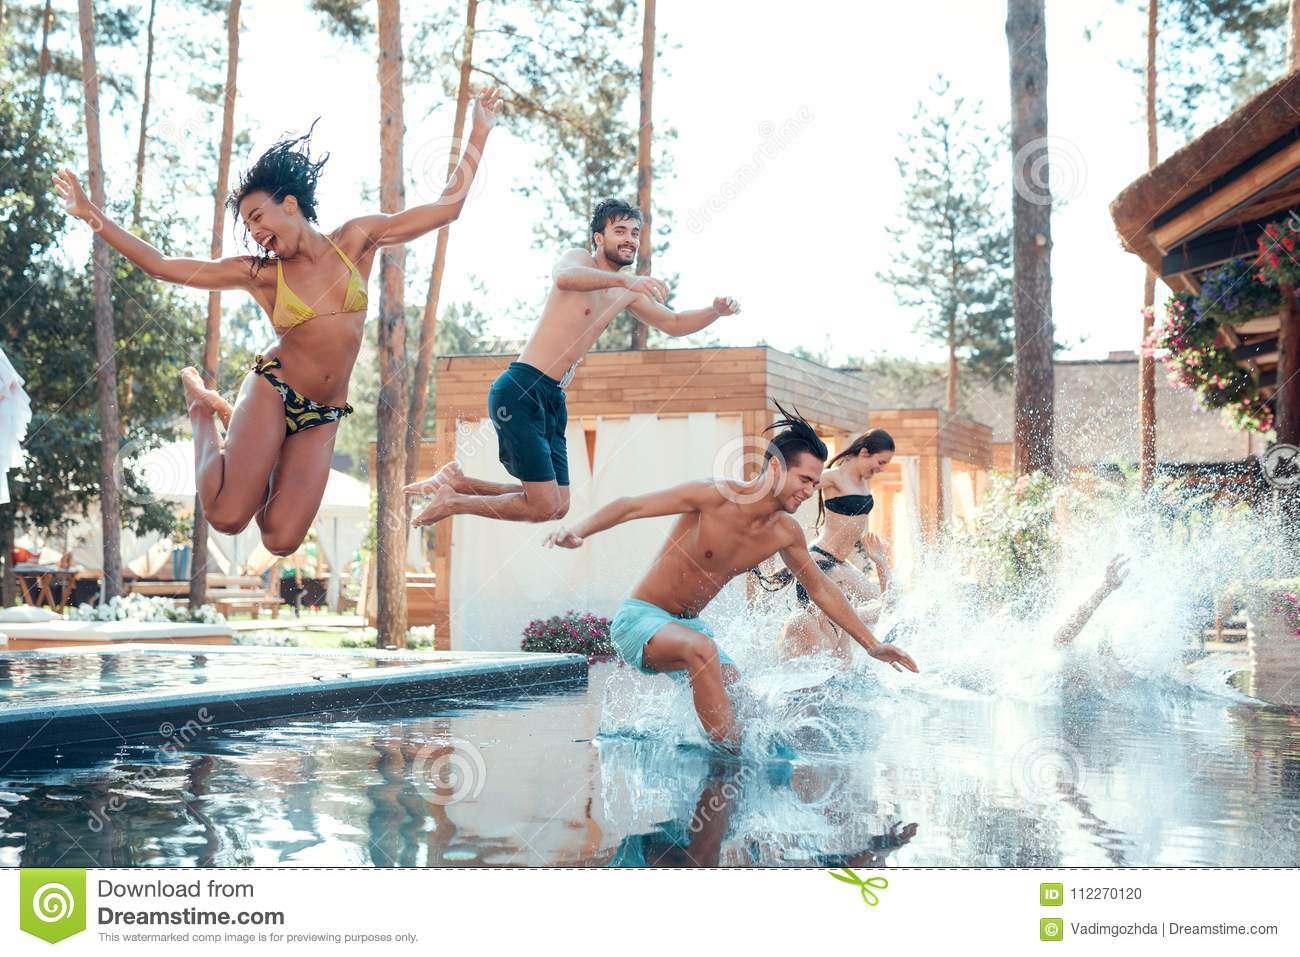 Company of happy young people jumping in pools forming splashes. Swimming pool party concept.